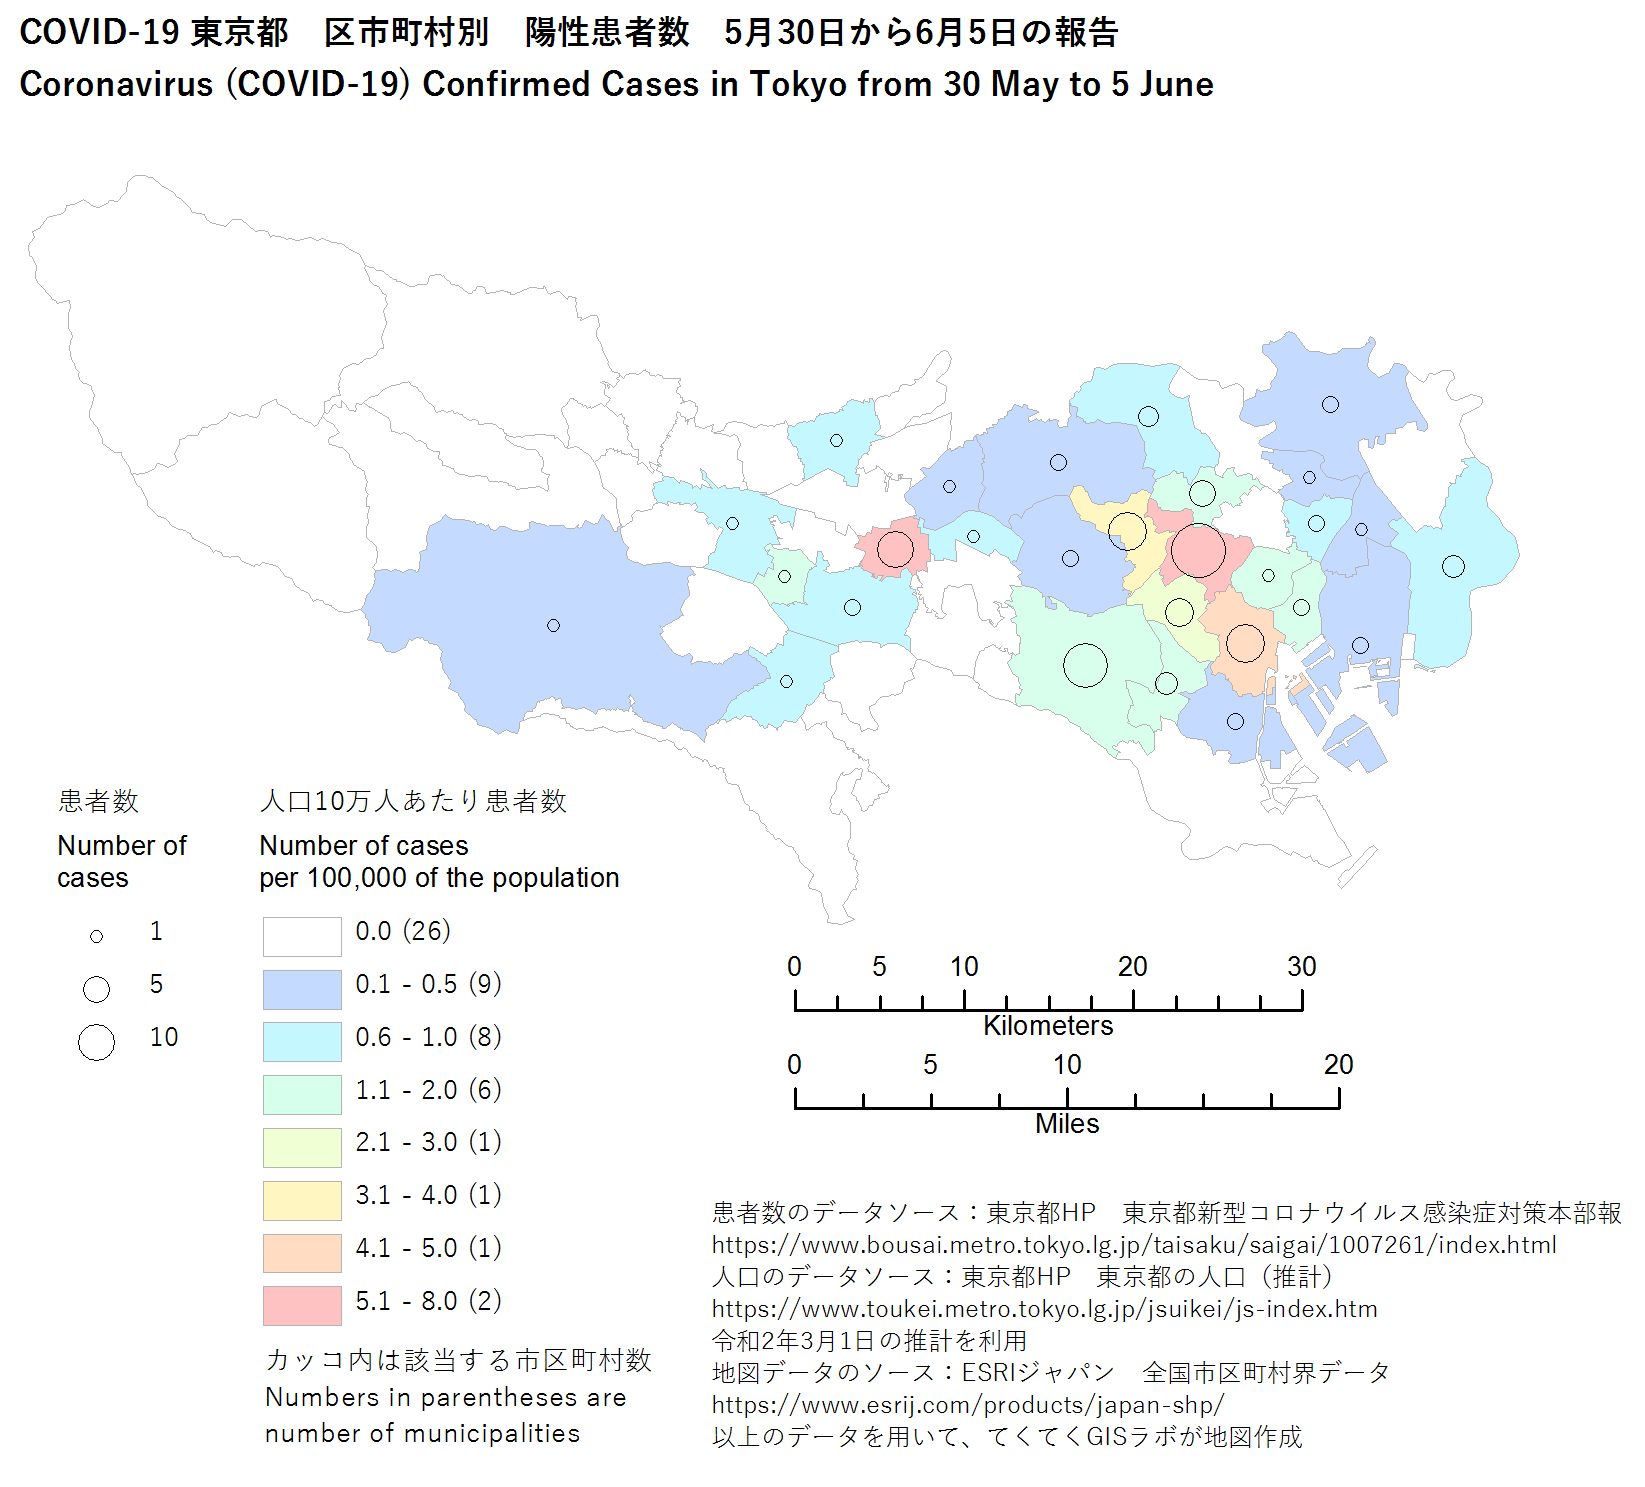 Number of cases in Tokyo from 30 May to 5 June